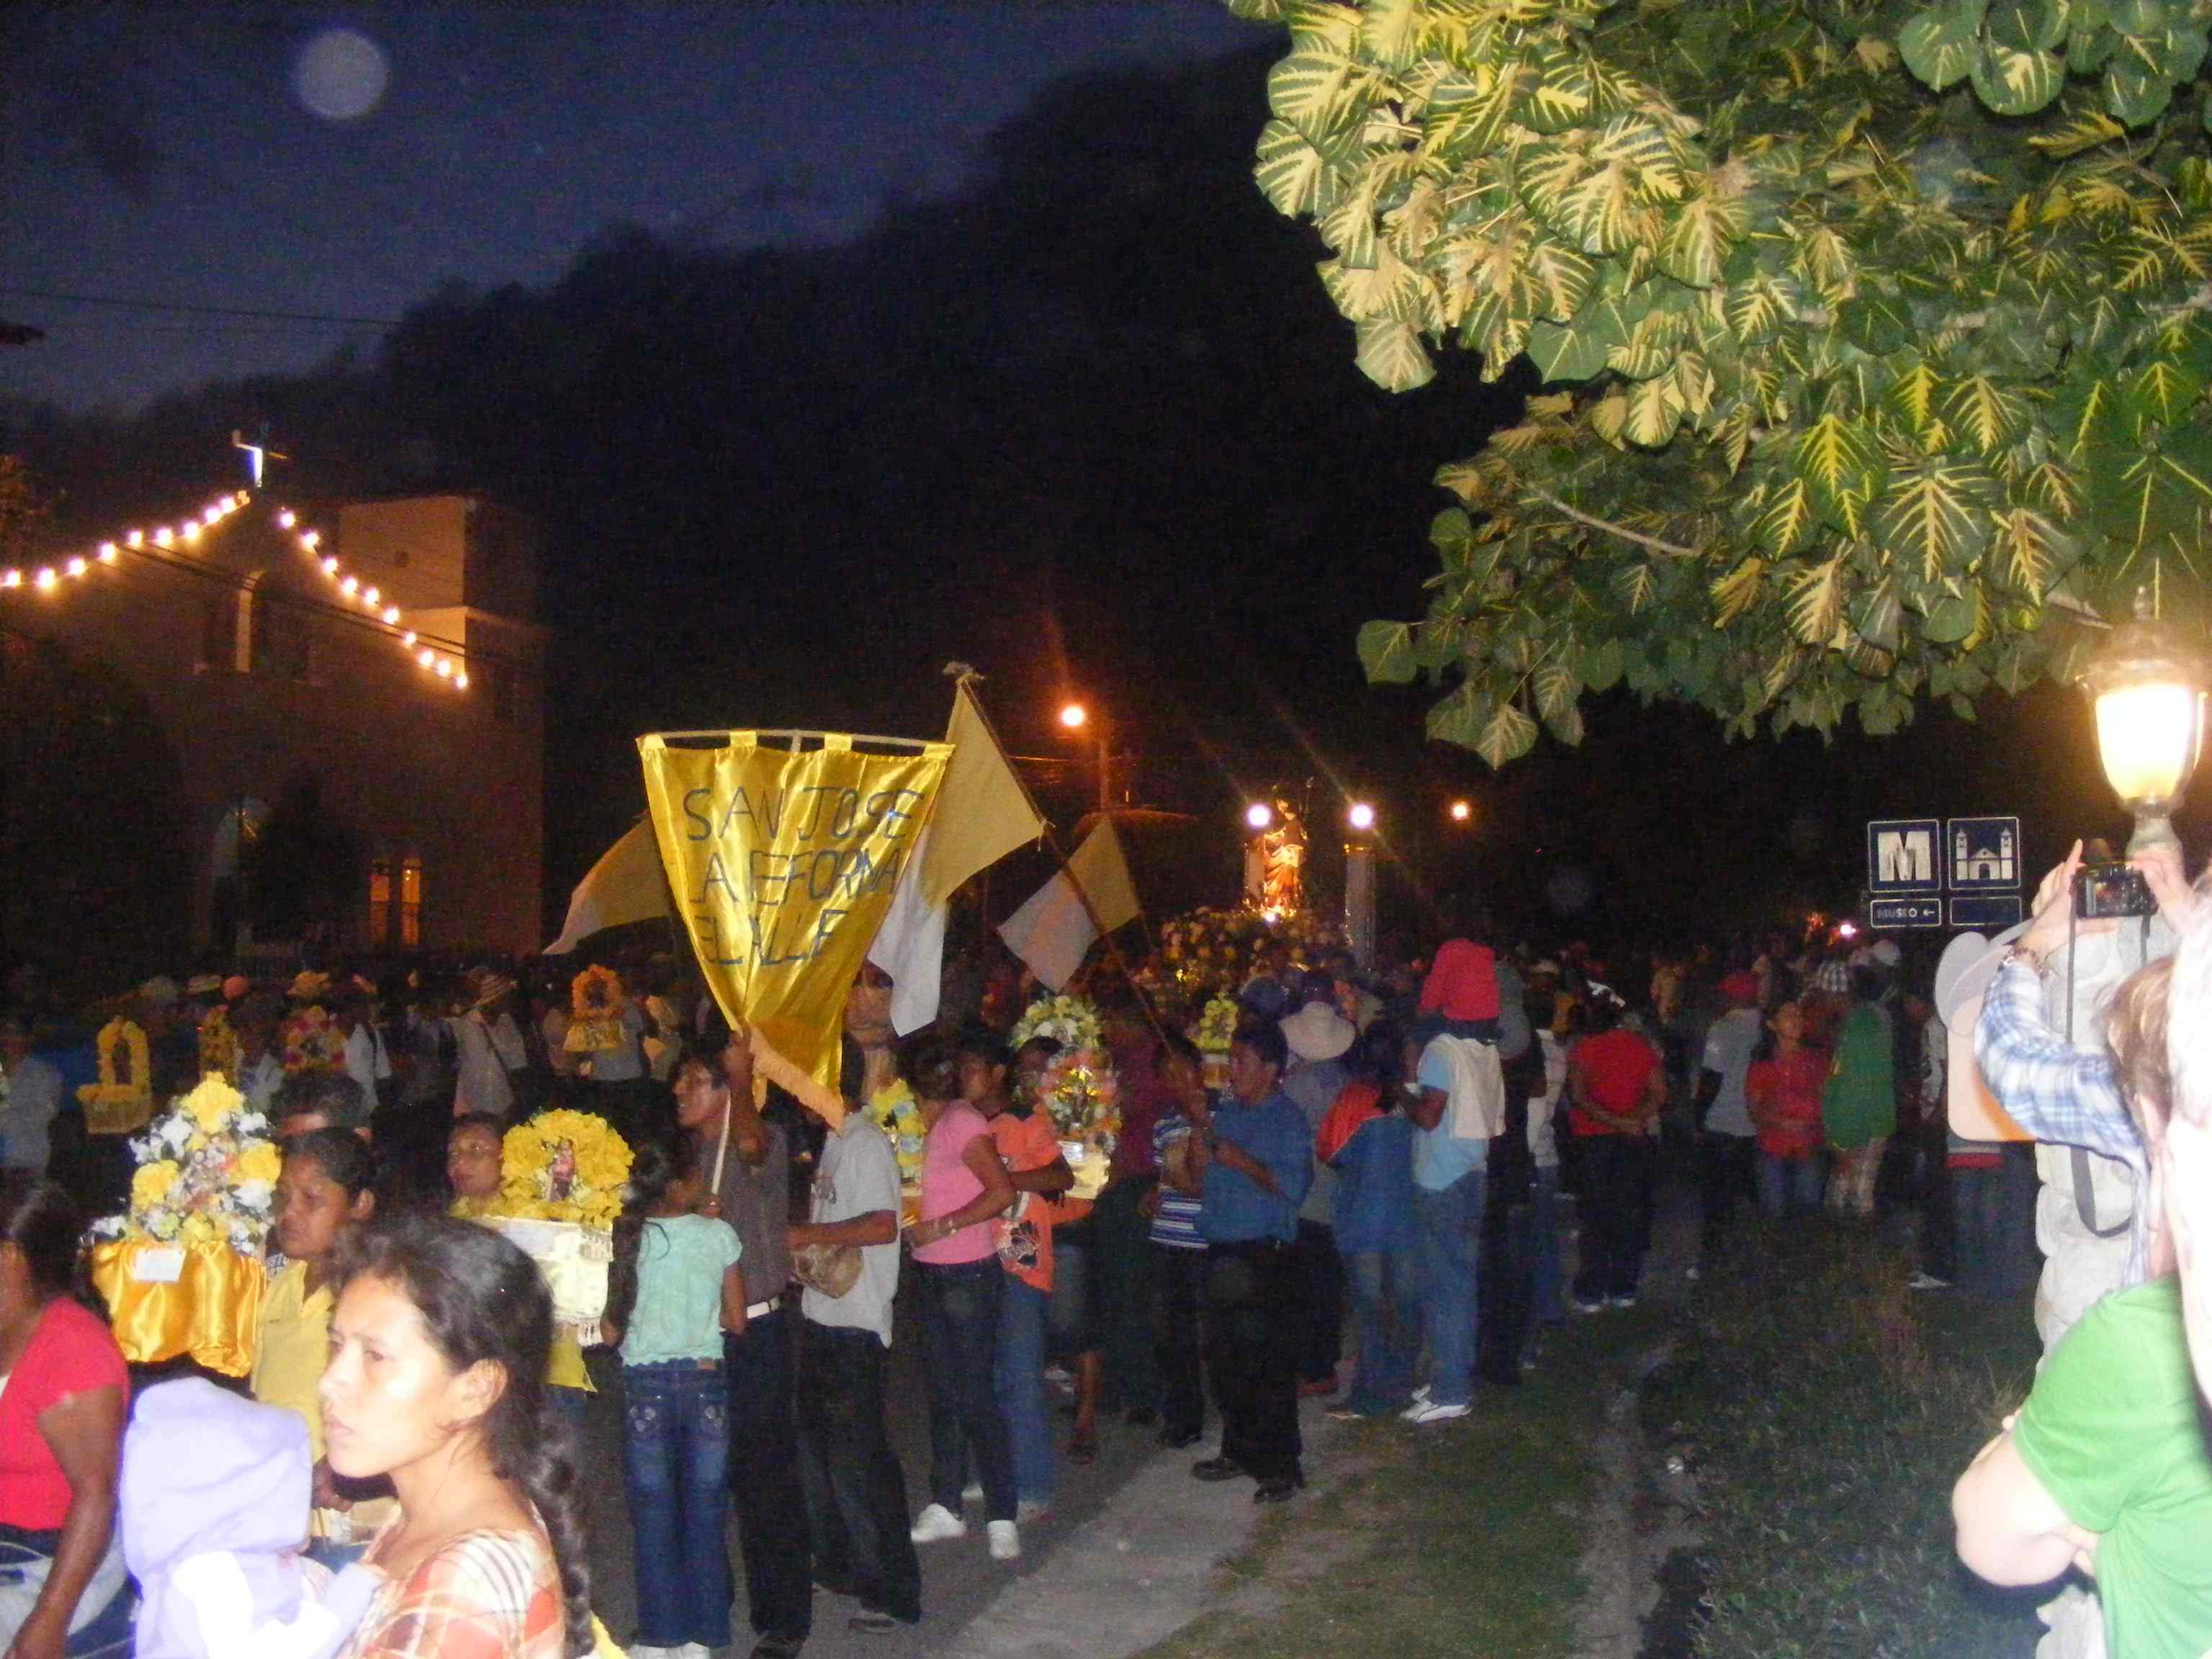 Festivities in El Valle